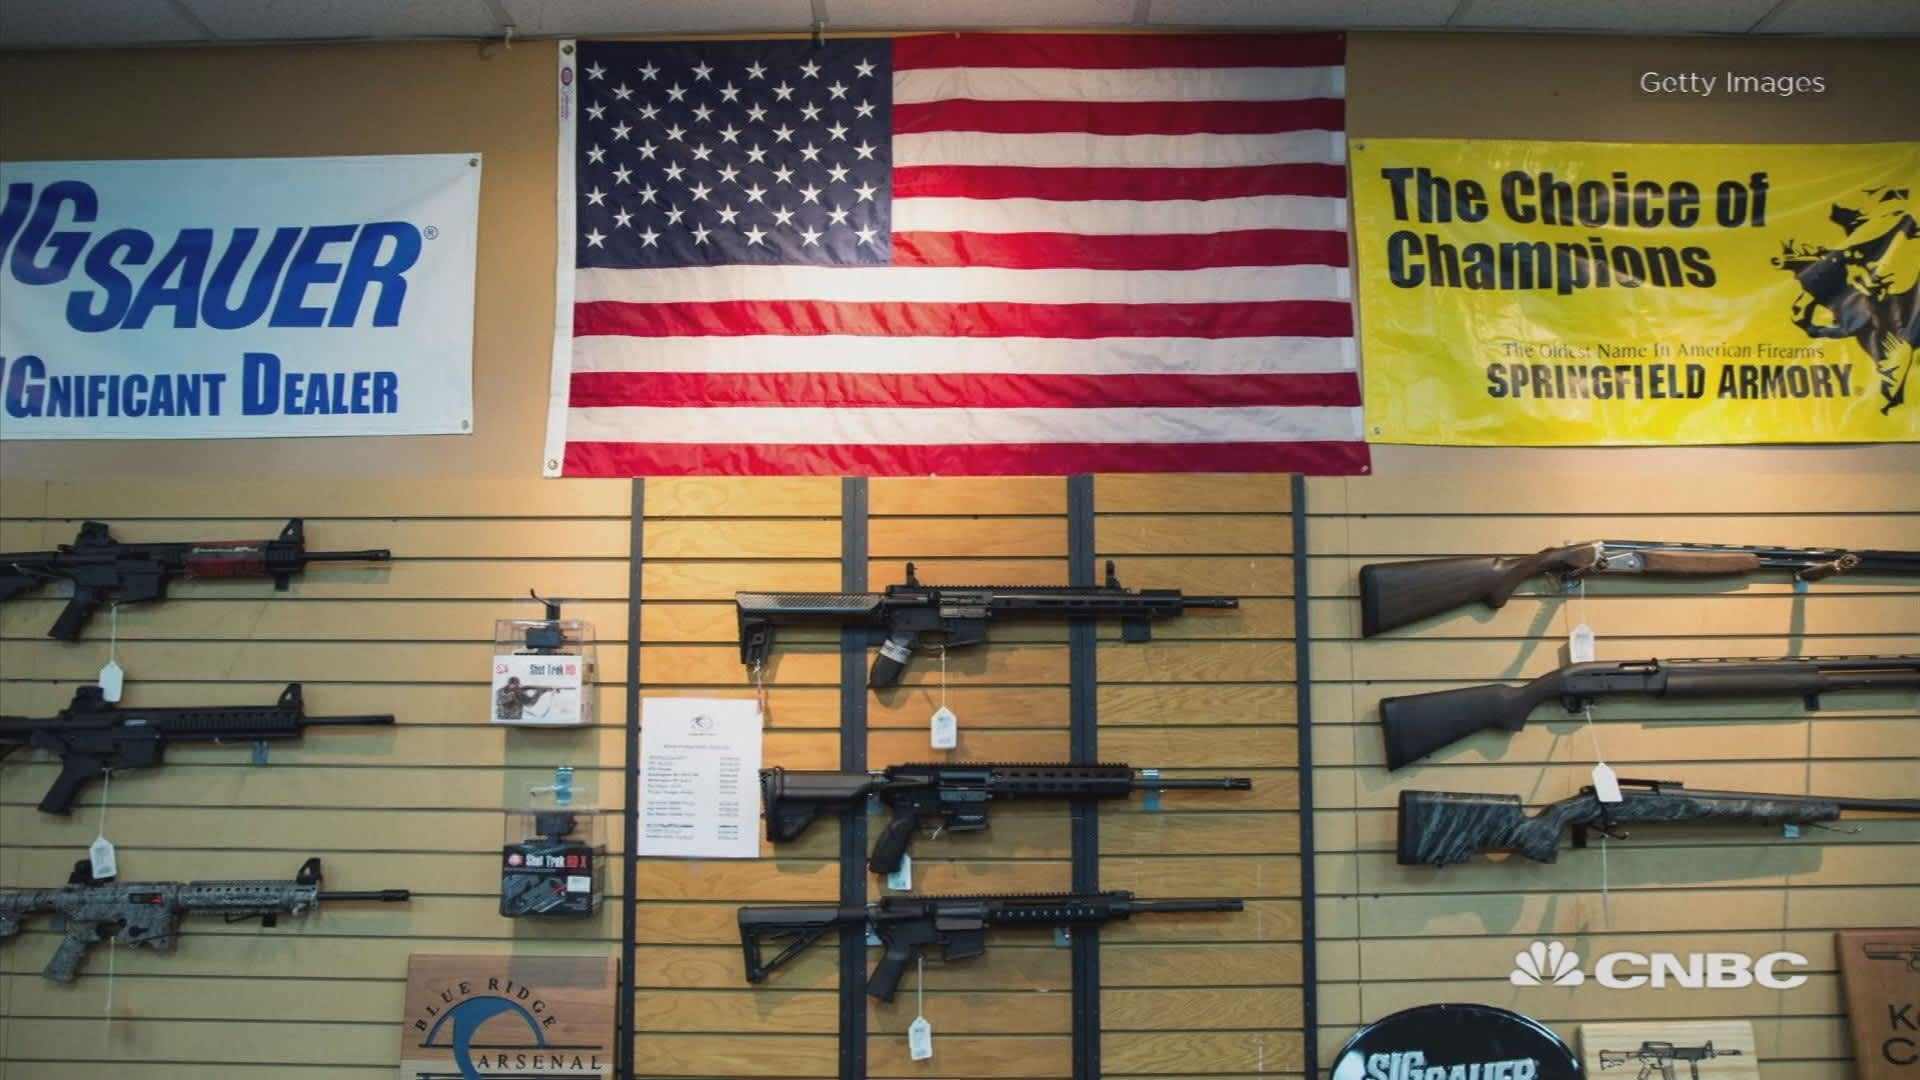 States with strict gun laws have fewer firearms deaths  Here's how